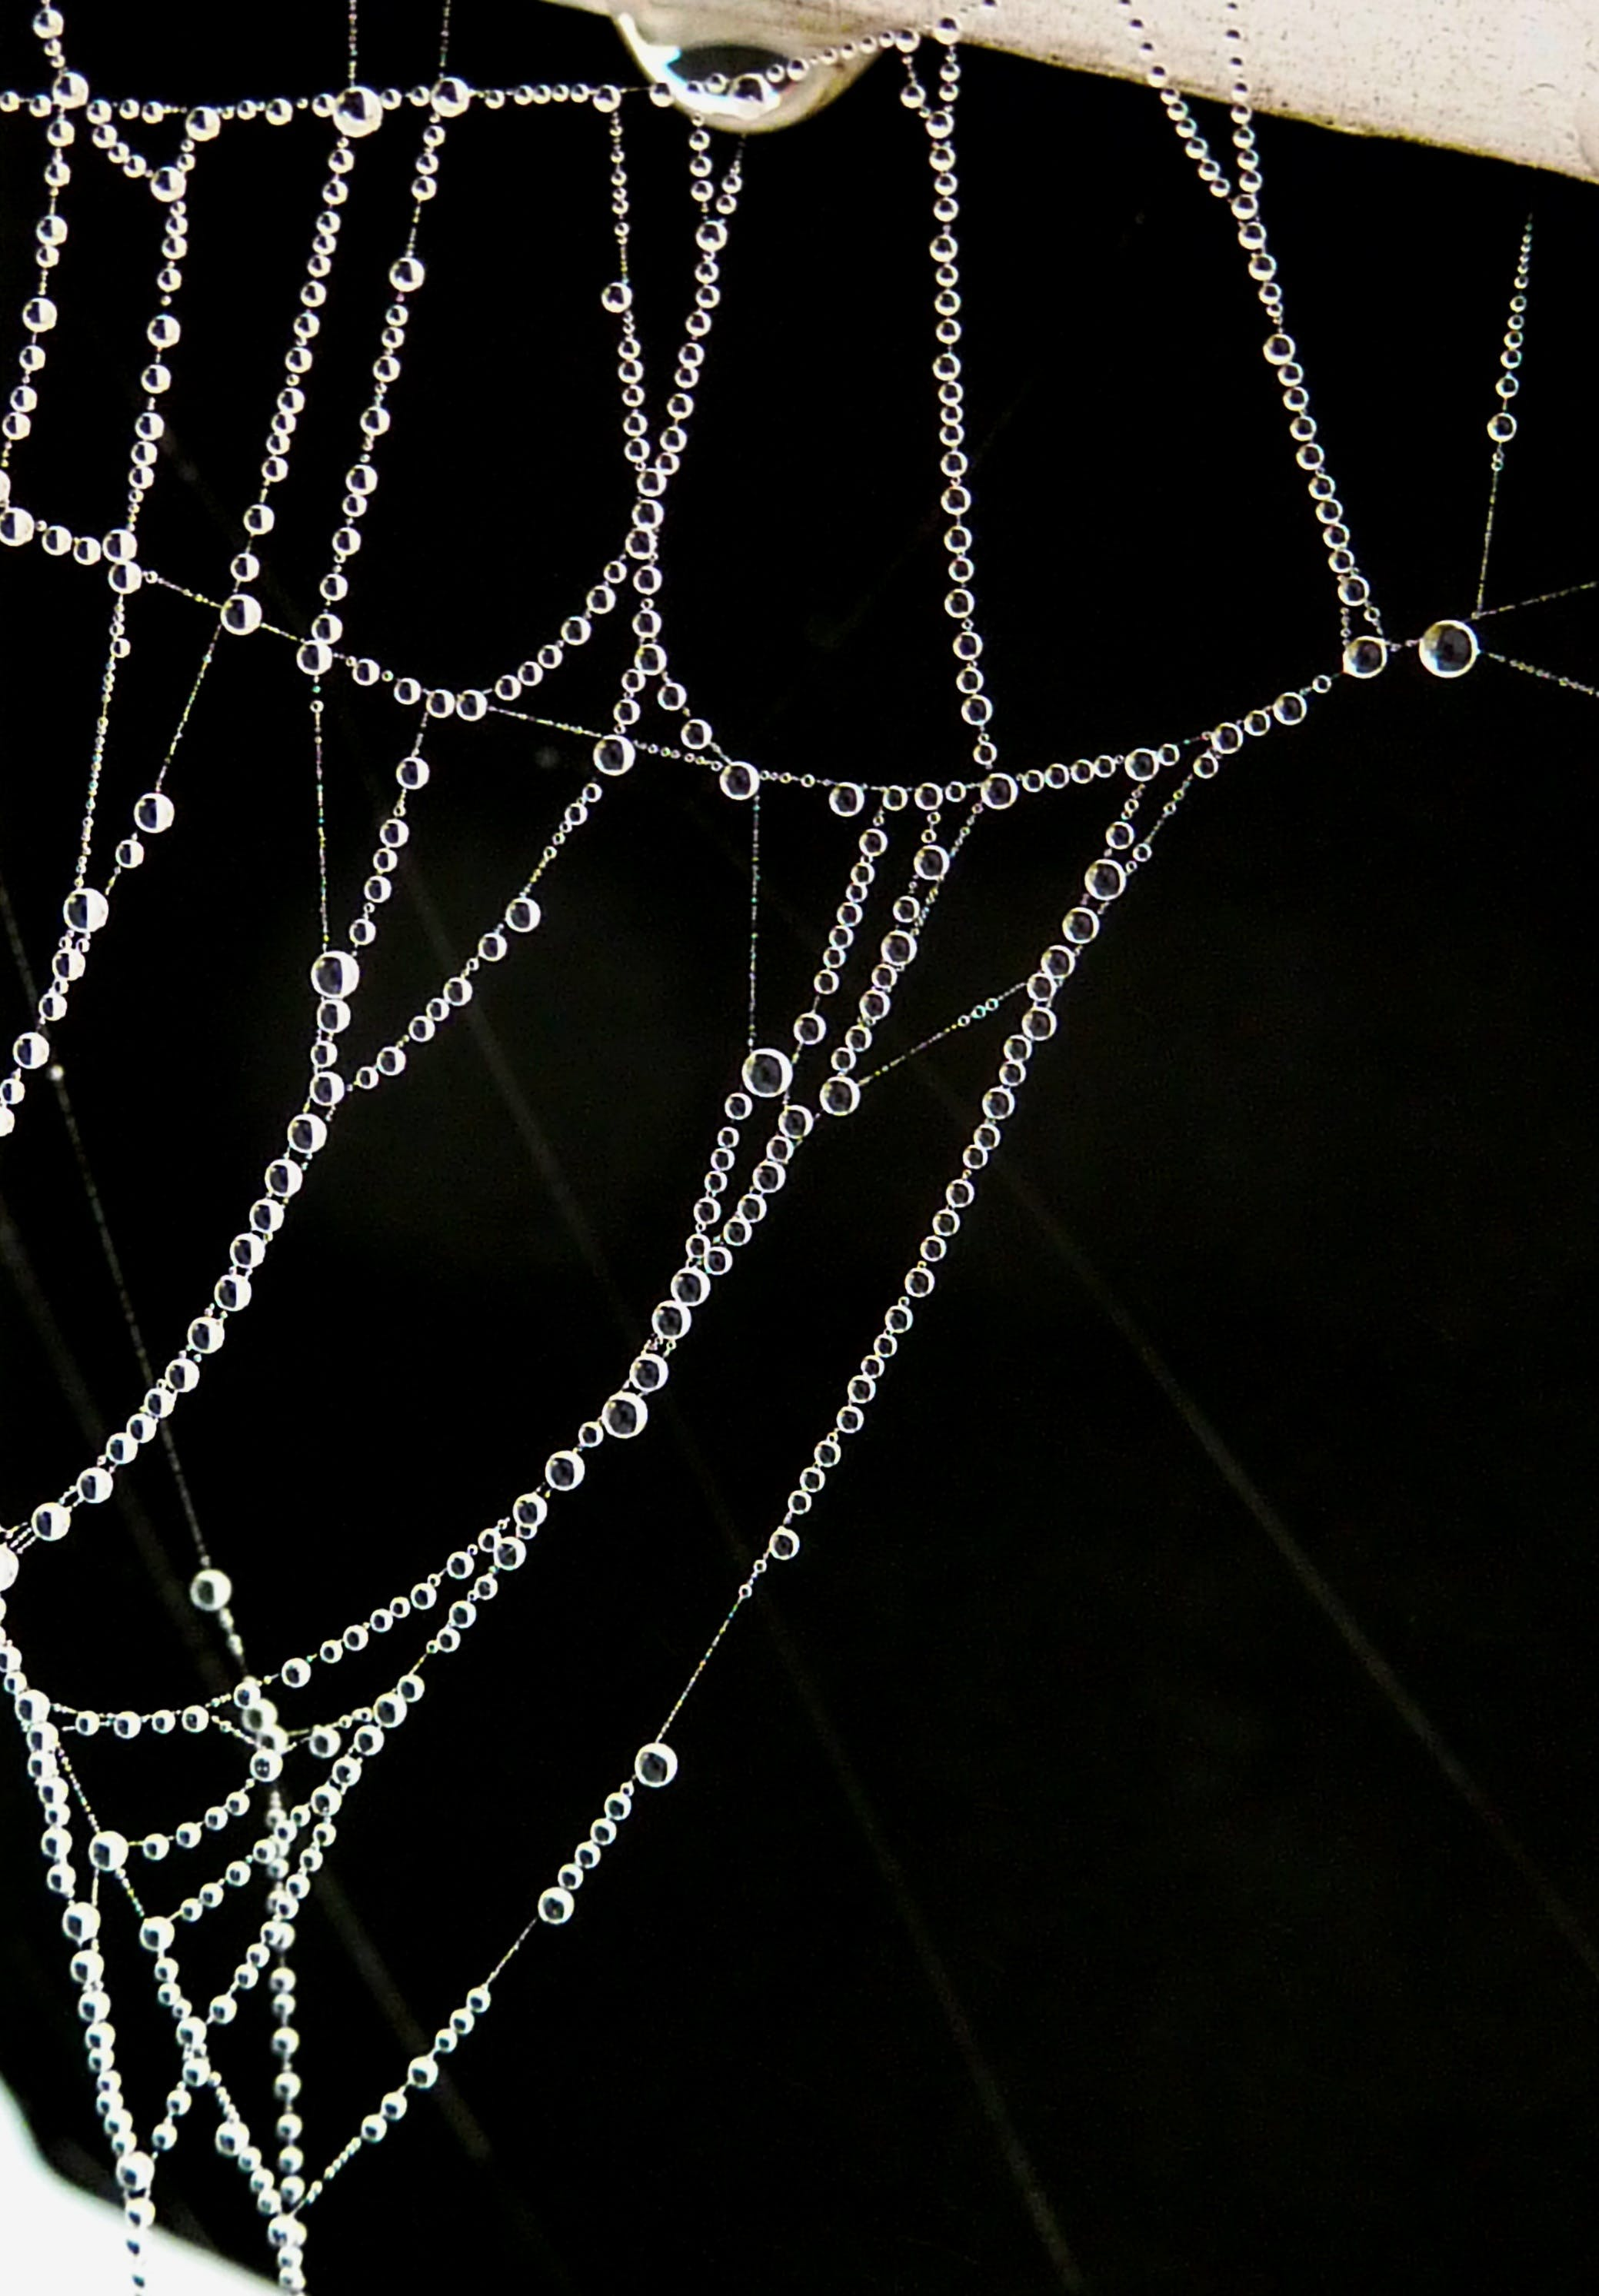 Free stock photo of dew, wet, cobweb, spider's web